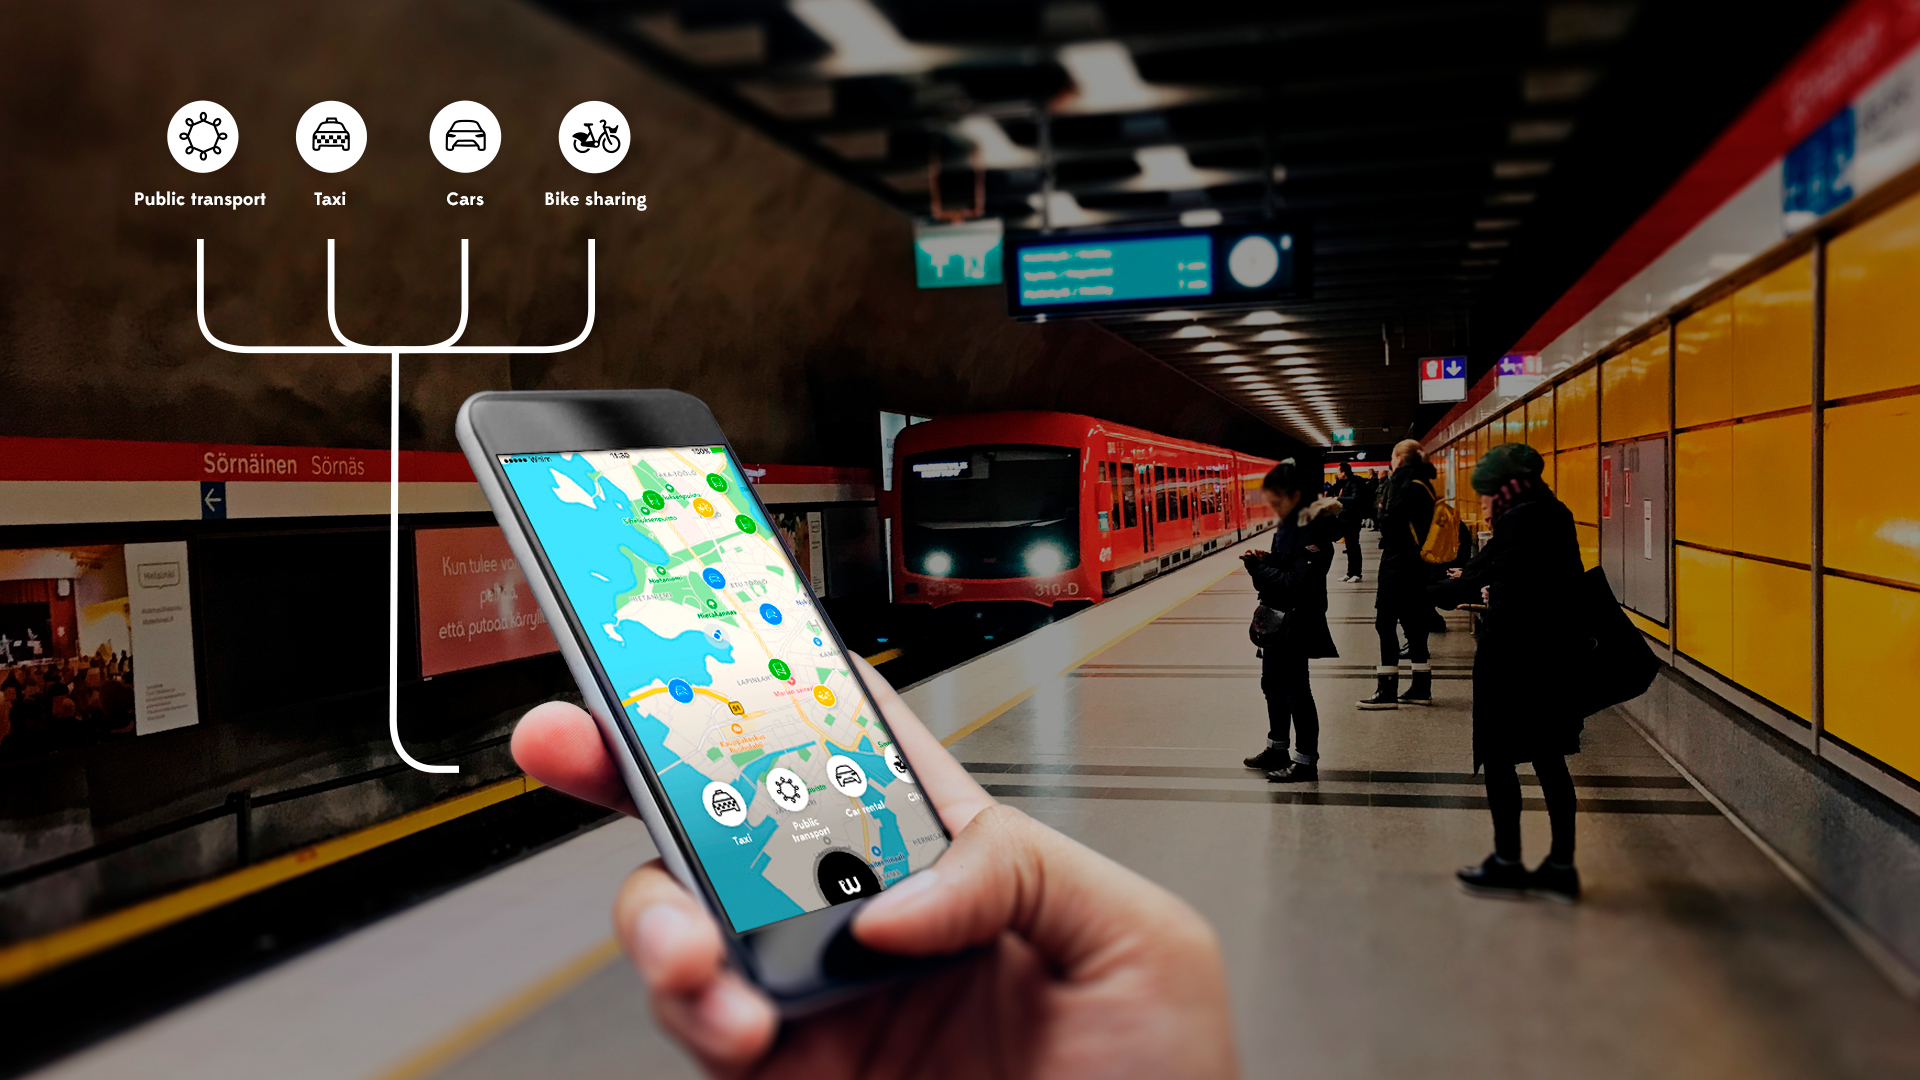 Whim, the all-in-one mobility app for ridesharing, public transit